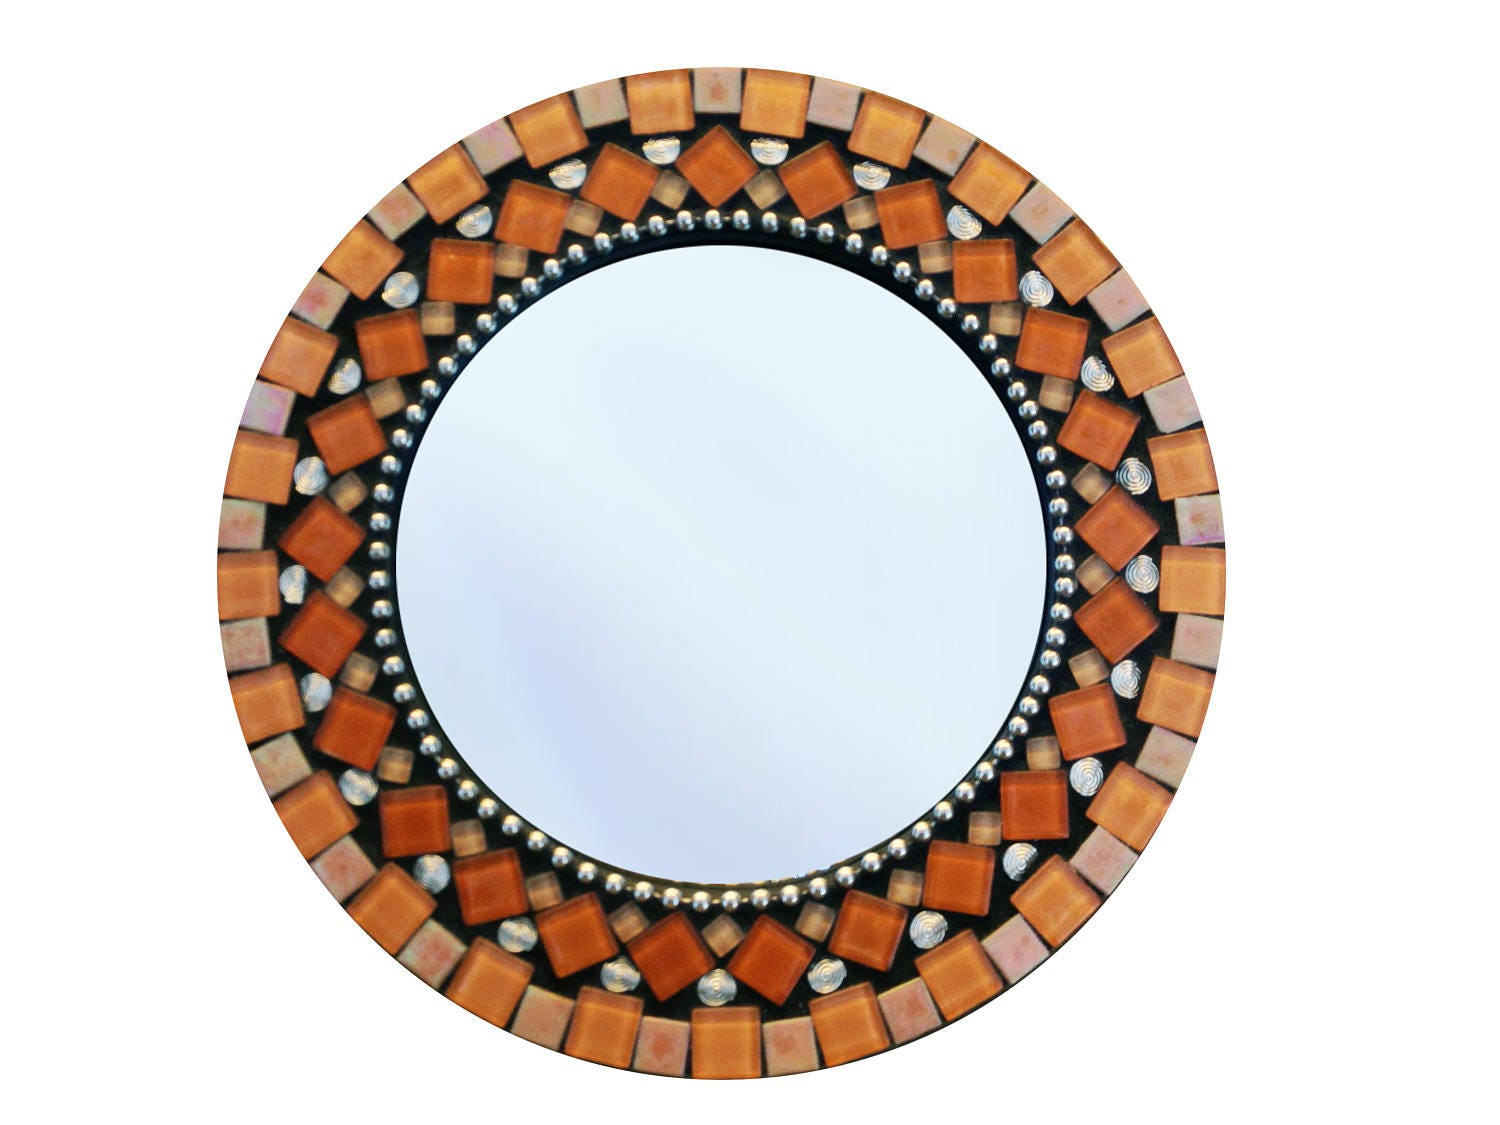 Orange wall mirror image collections home wall decoration ideas round wall mirror mosaic mirror orange and black zoom amipublicfo image collections amipublicfo Gallery